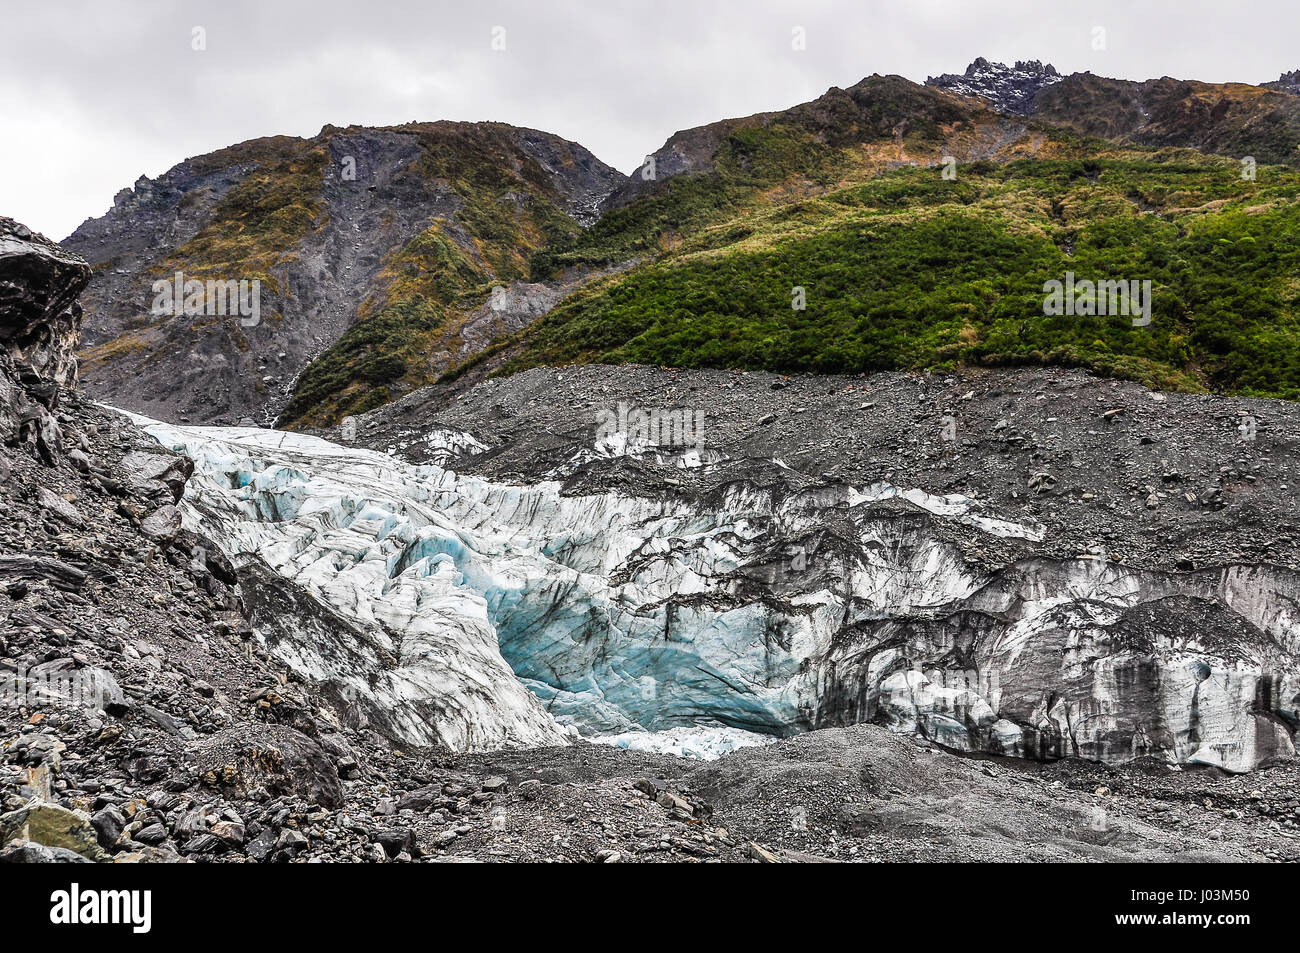 The view of Fox Glacier in winter in New Zealand - Stock Image